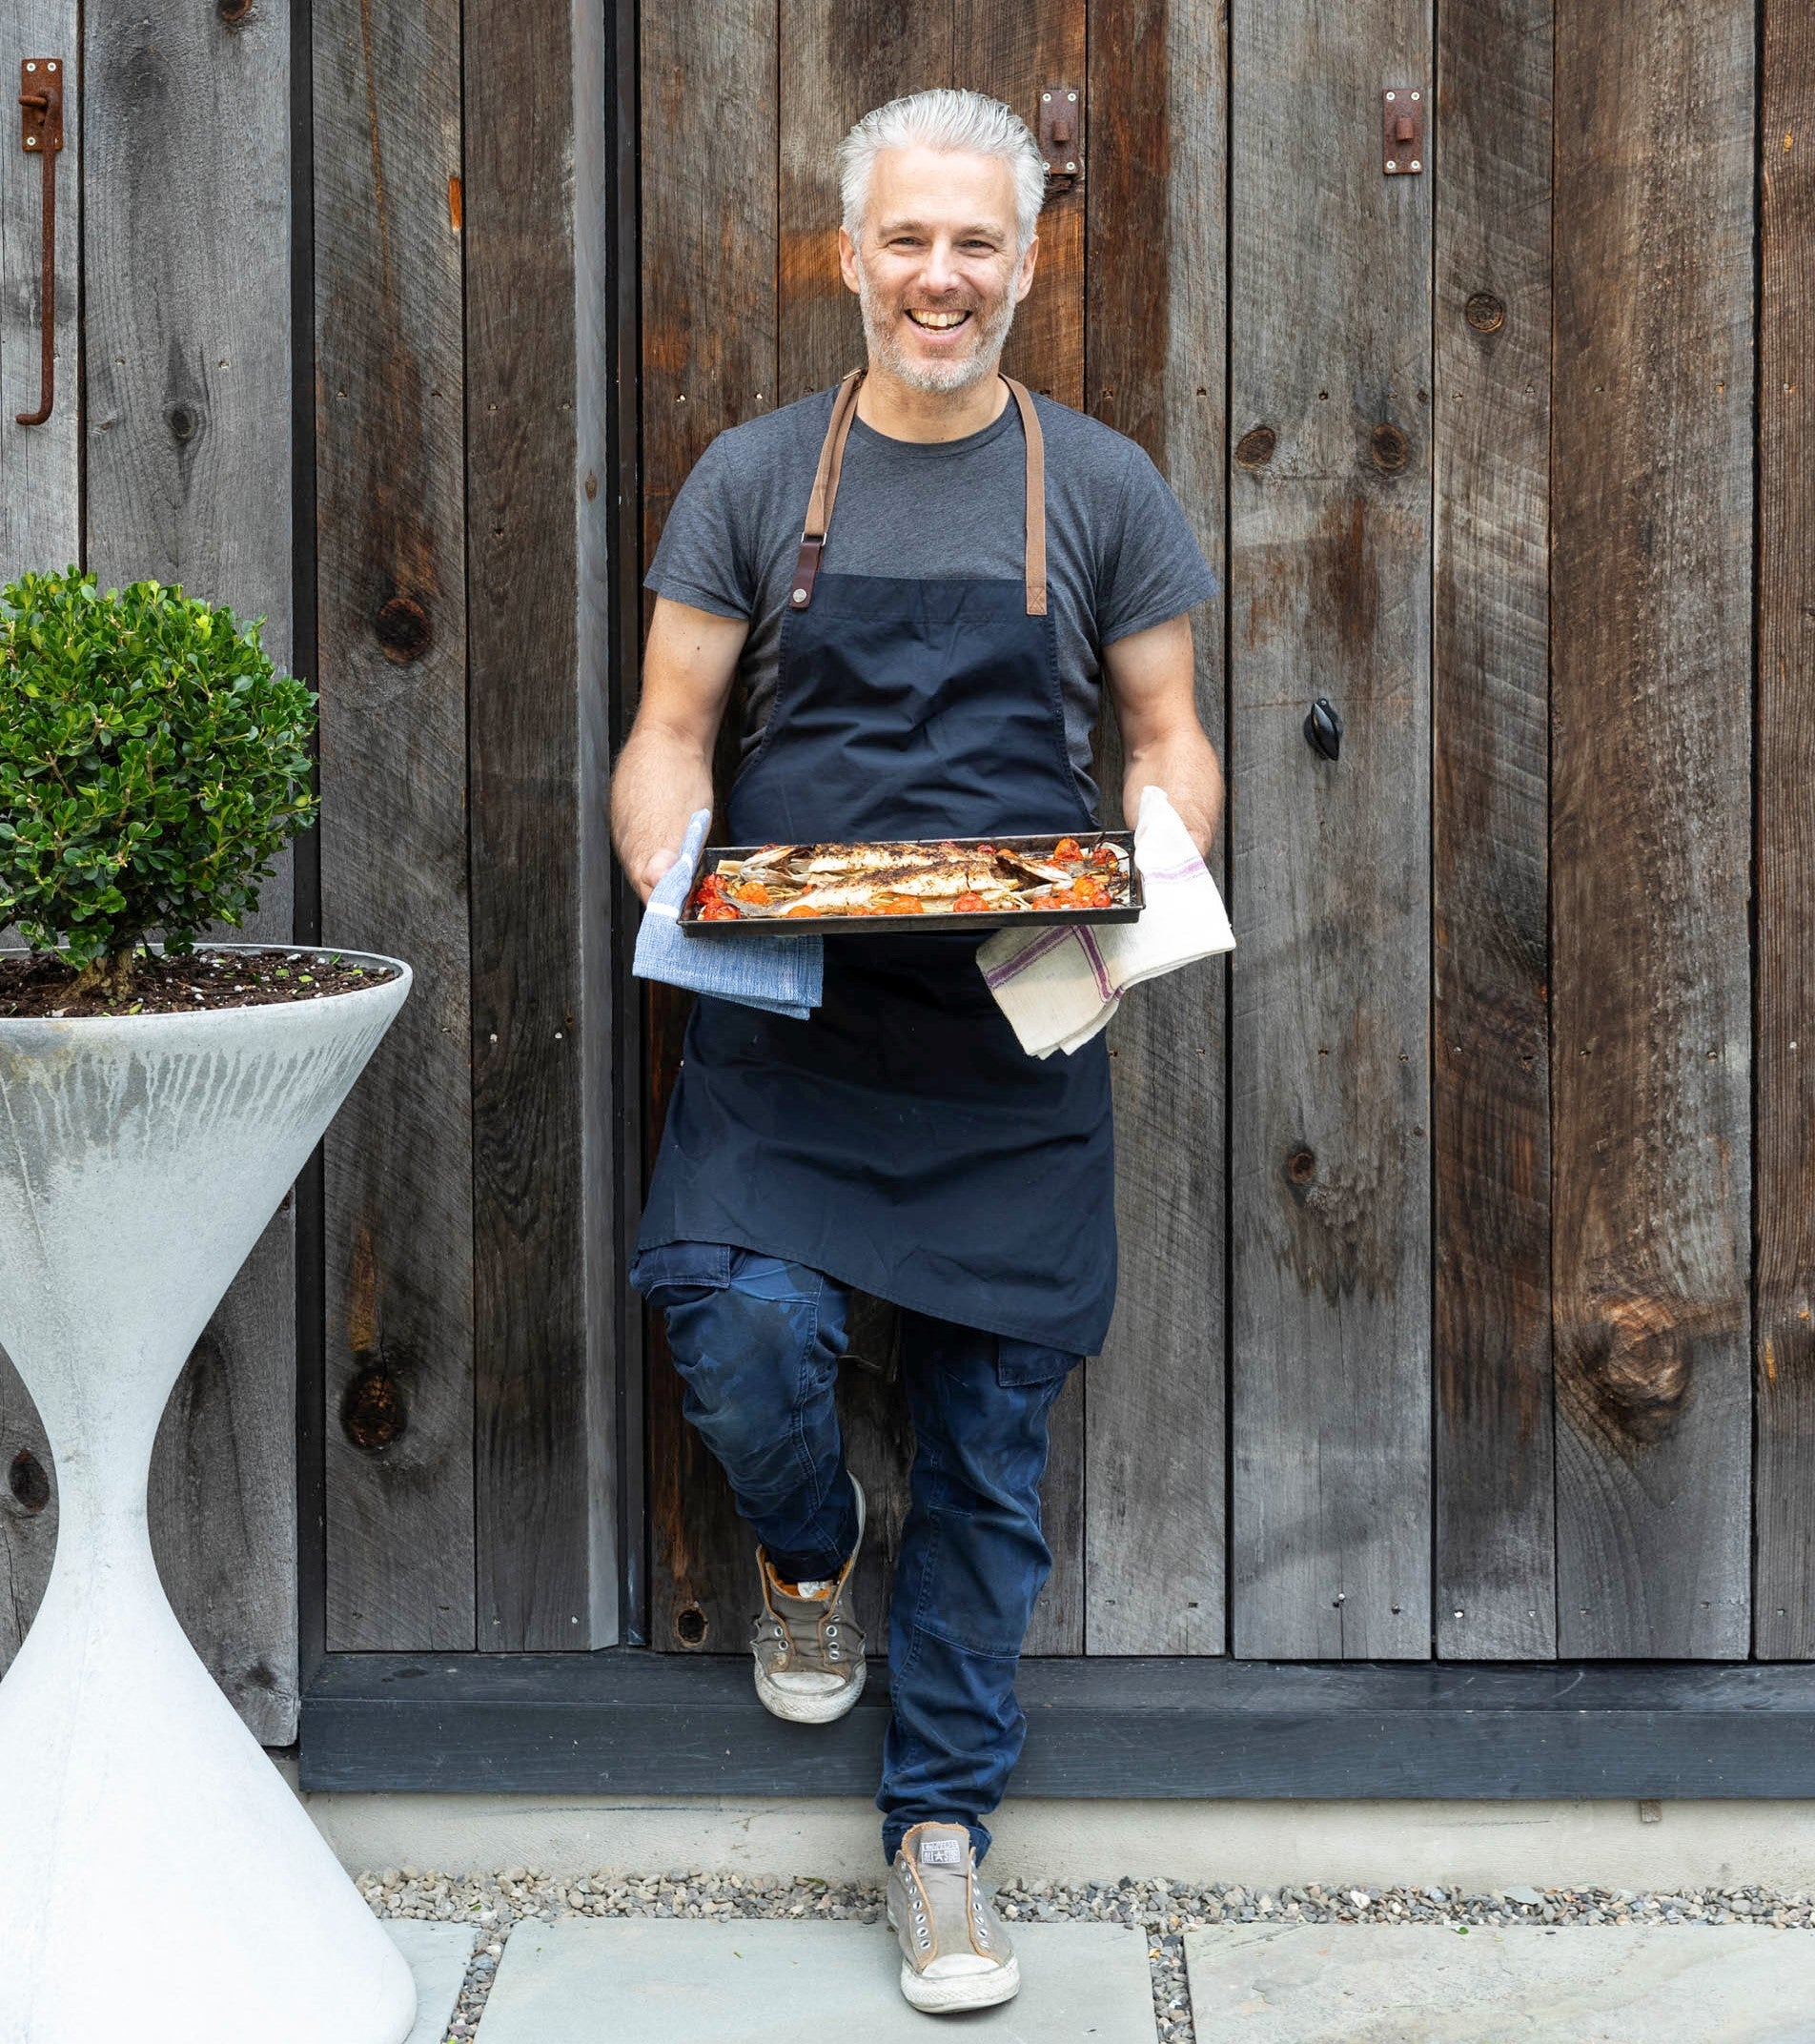 Israeli chef and spice master Lior Lev Sercarz is holding a tray of food and smiling